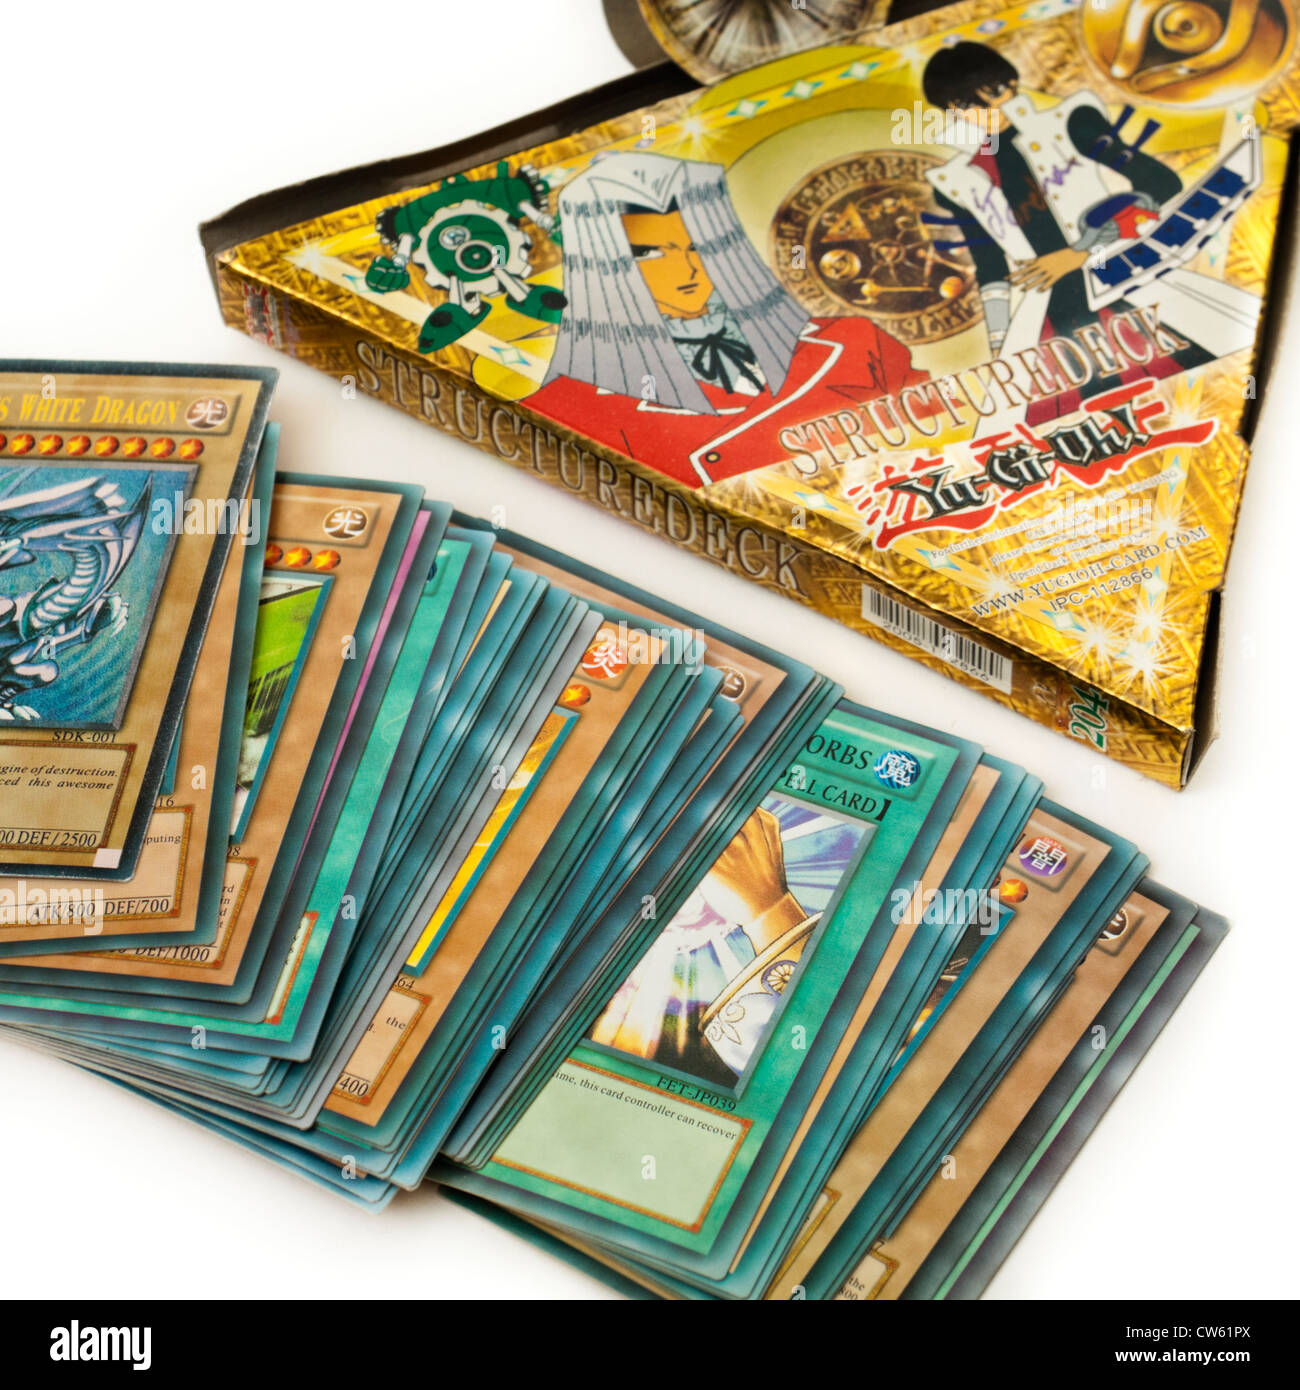 Yu-Gi-Oh! trading card game - Stock Image